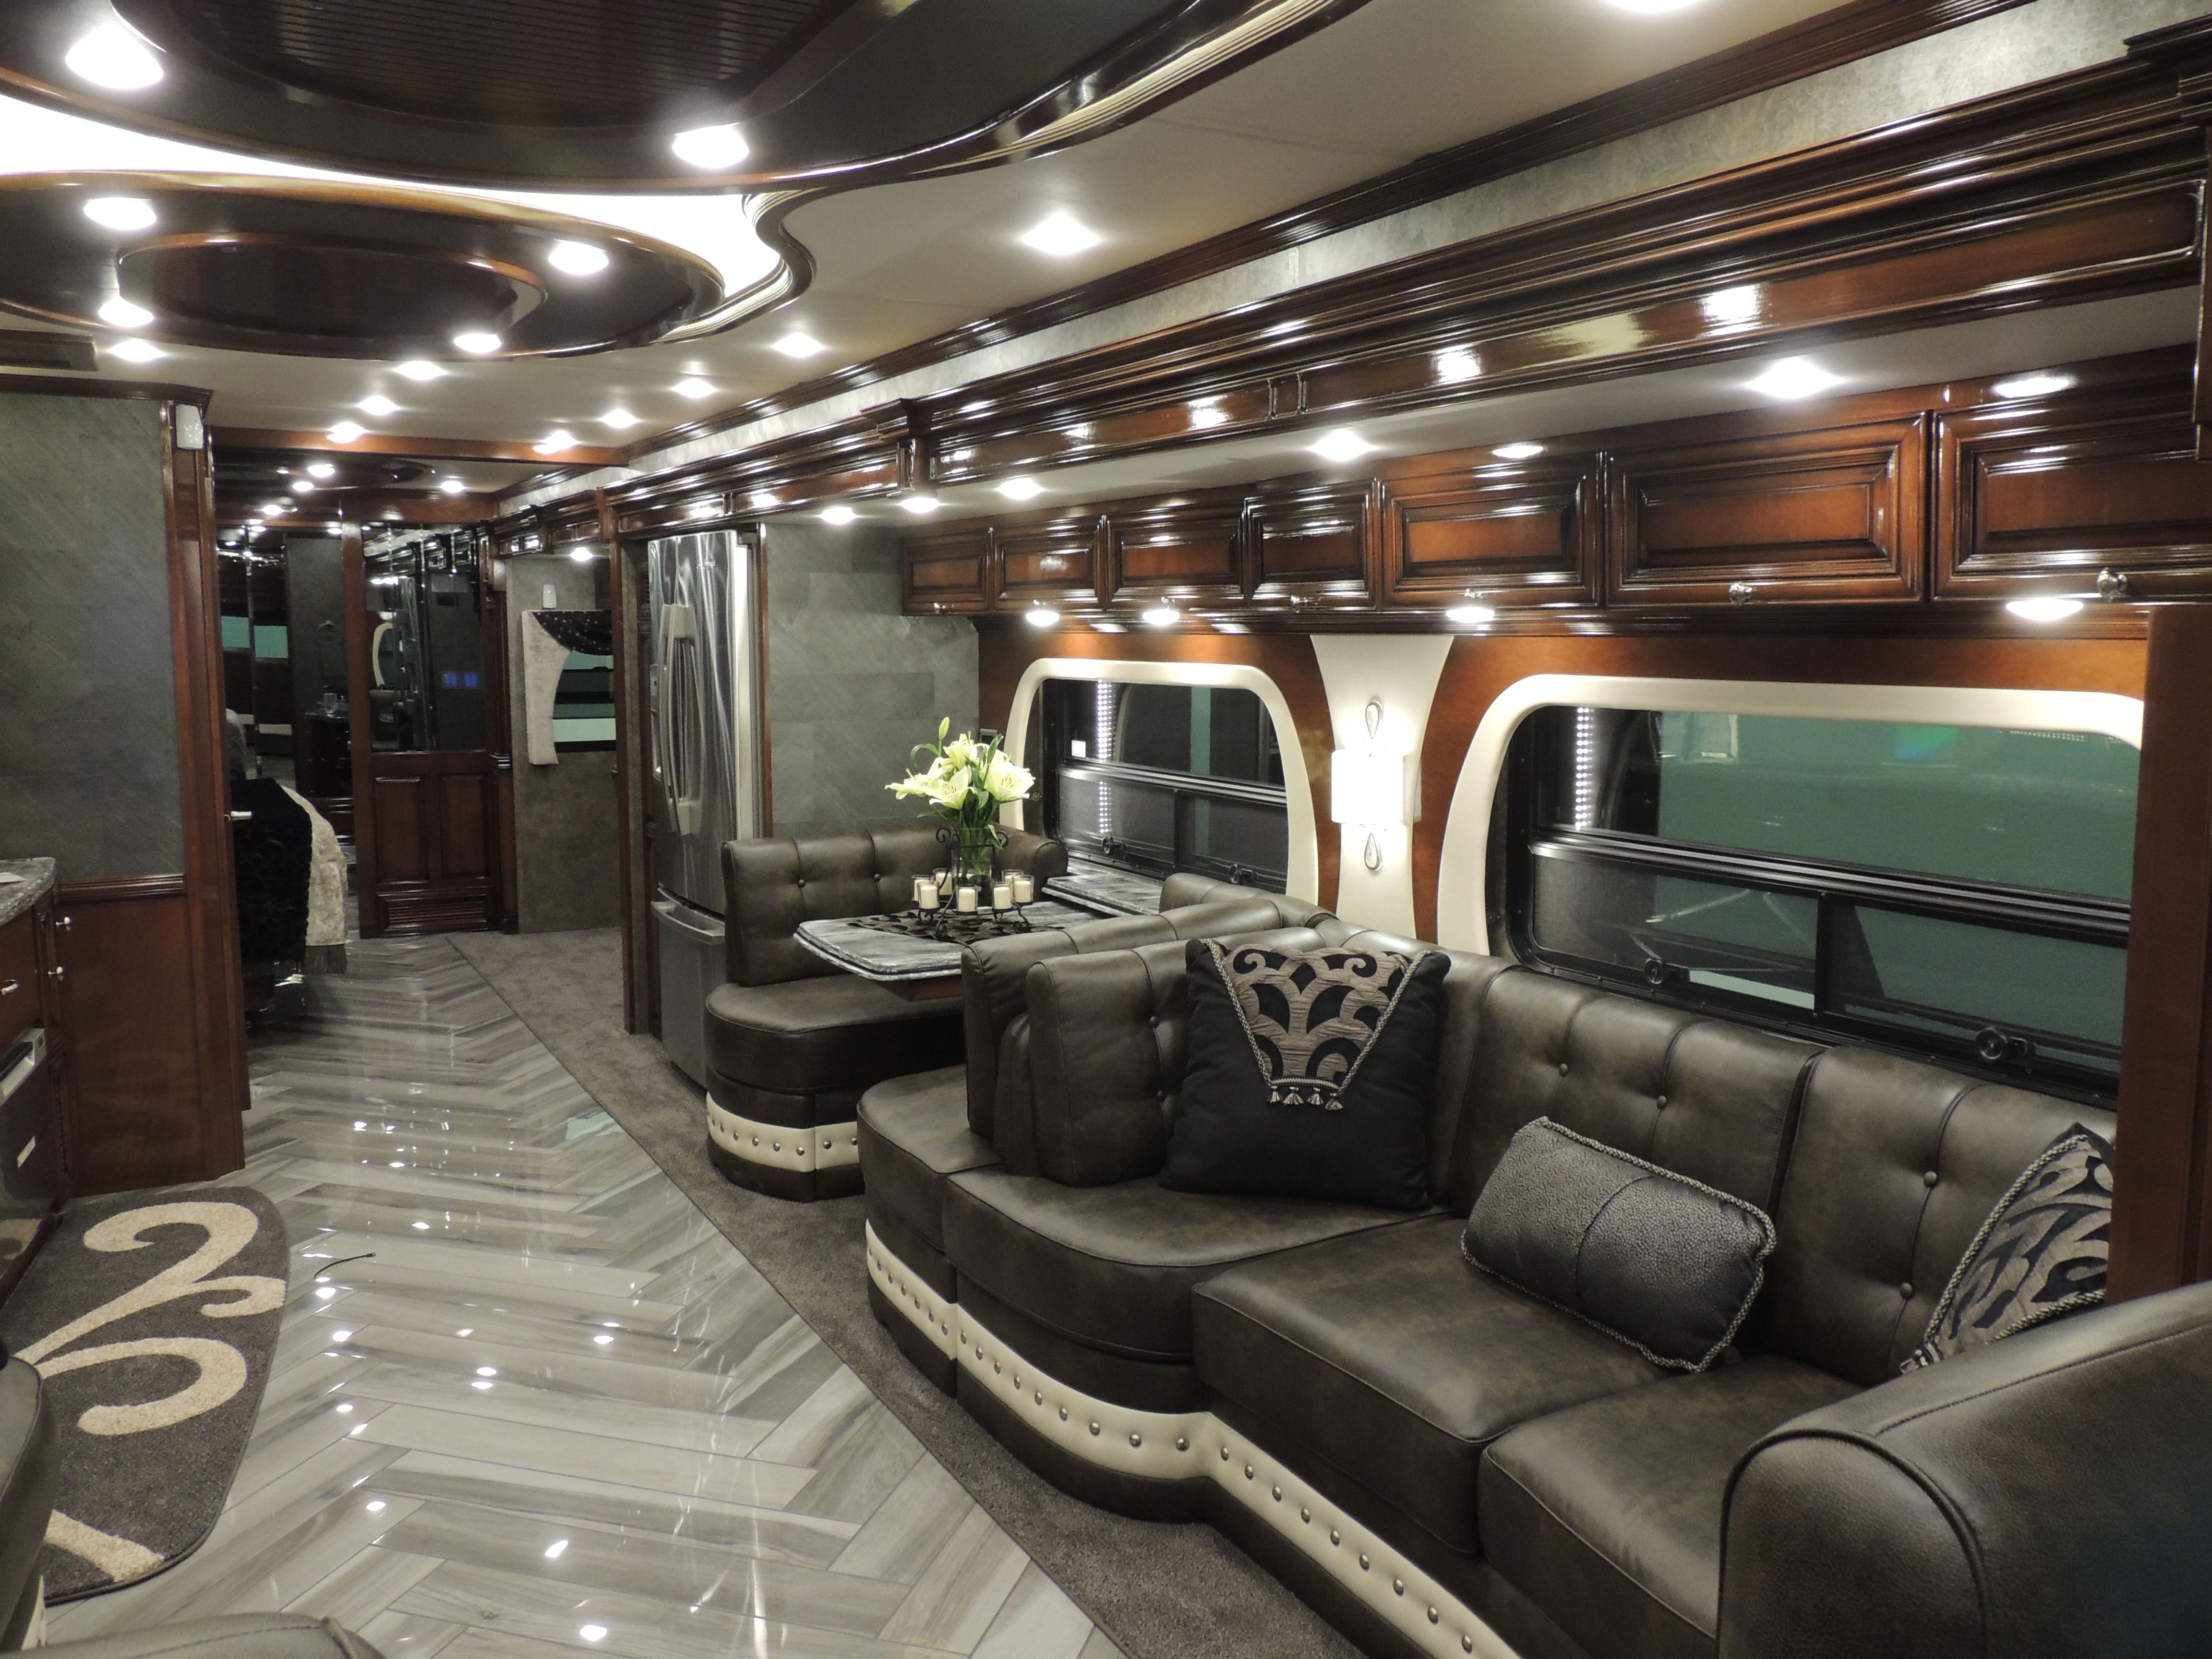 2015 Newmar Essex Rvs And Motor Homes Of All Kinds